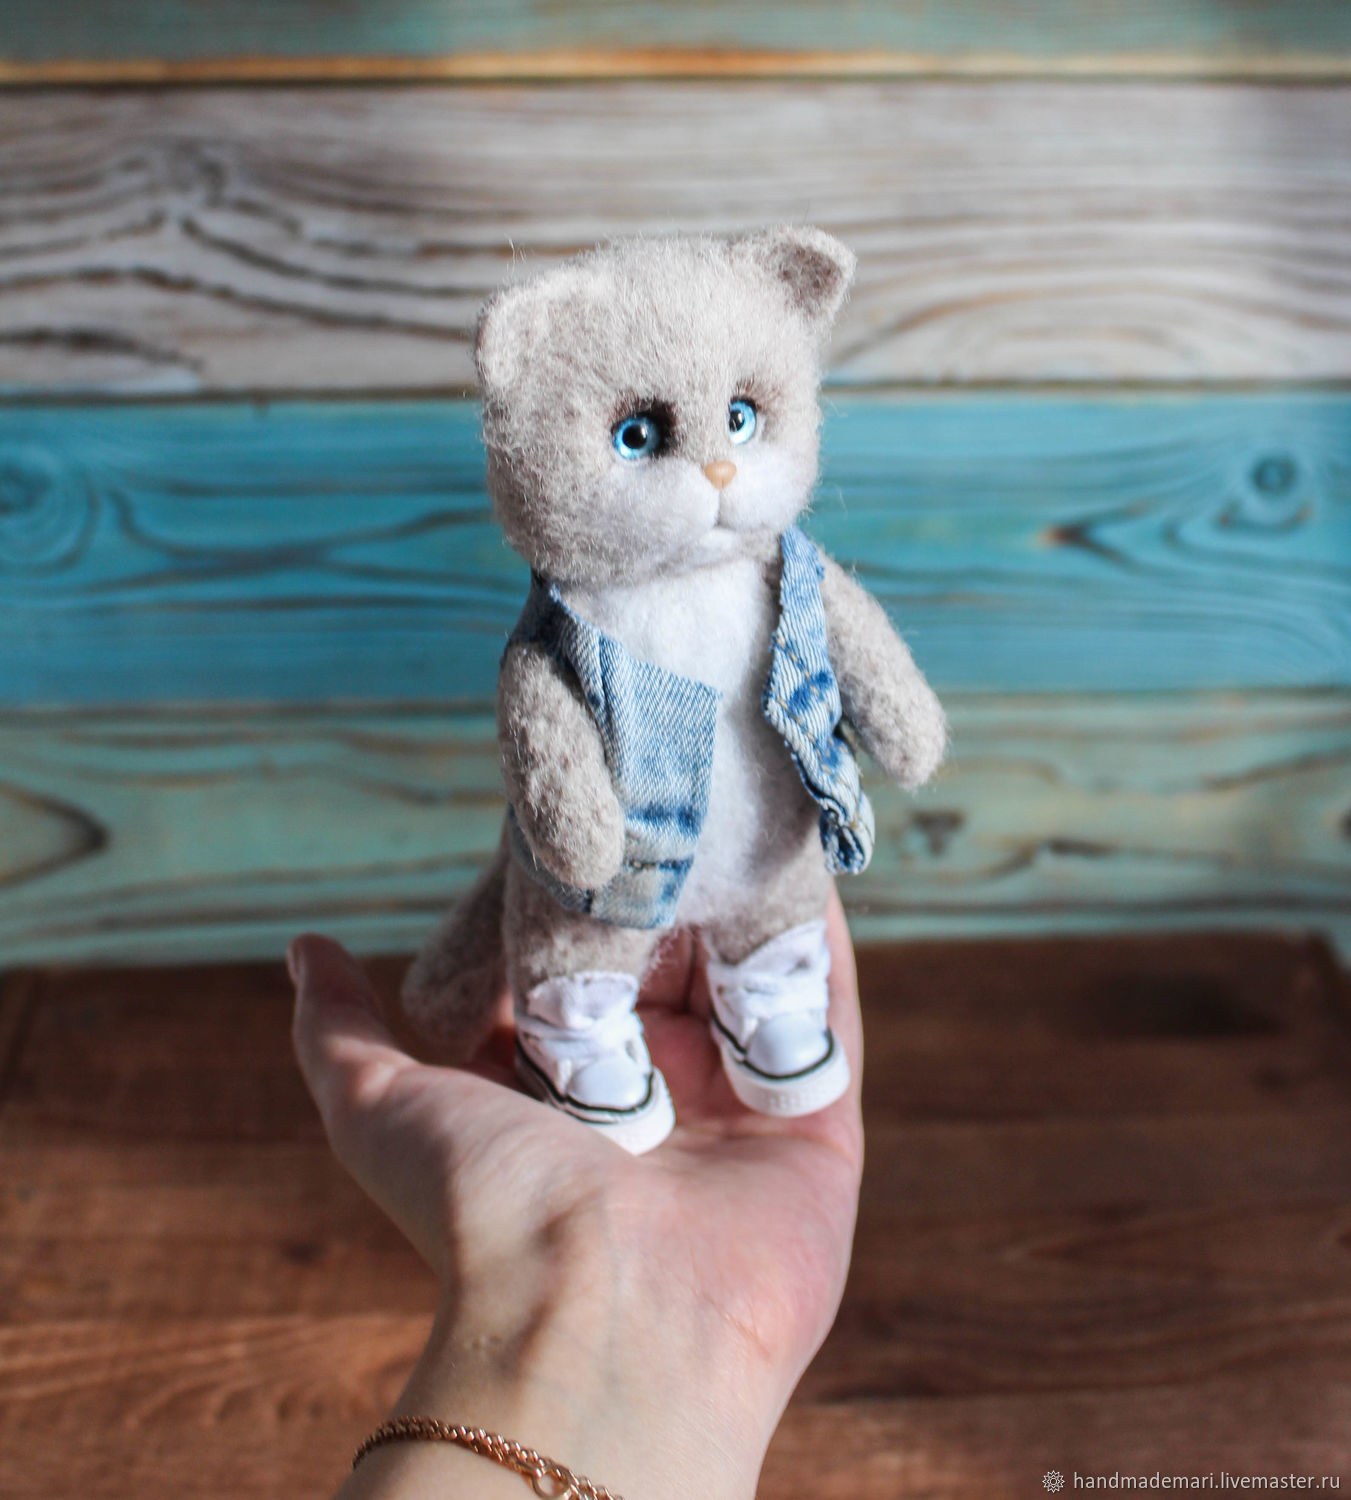 Cat in sneakers and jeans toy made of